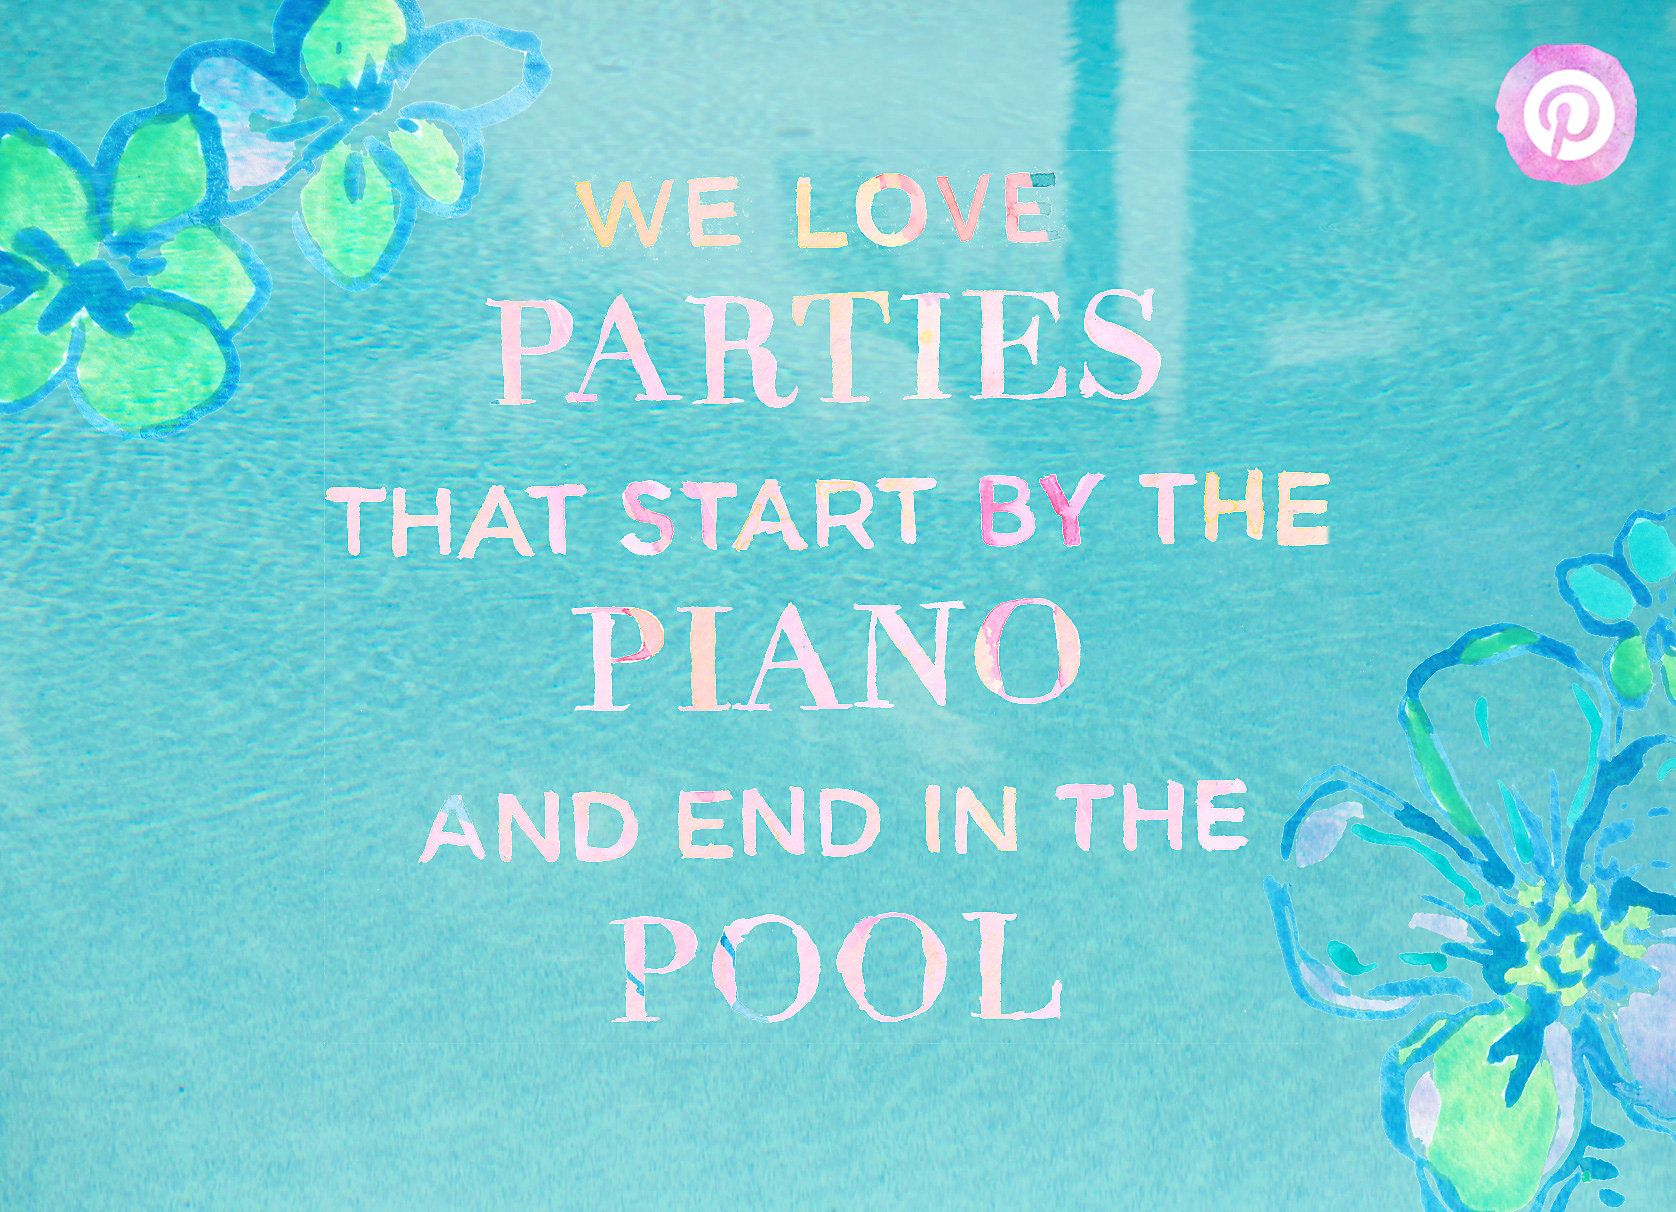 Lilly Pulitzer Quotes Lilly Pulitzer Quote About Parties That Startthe Piano And End